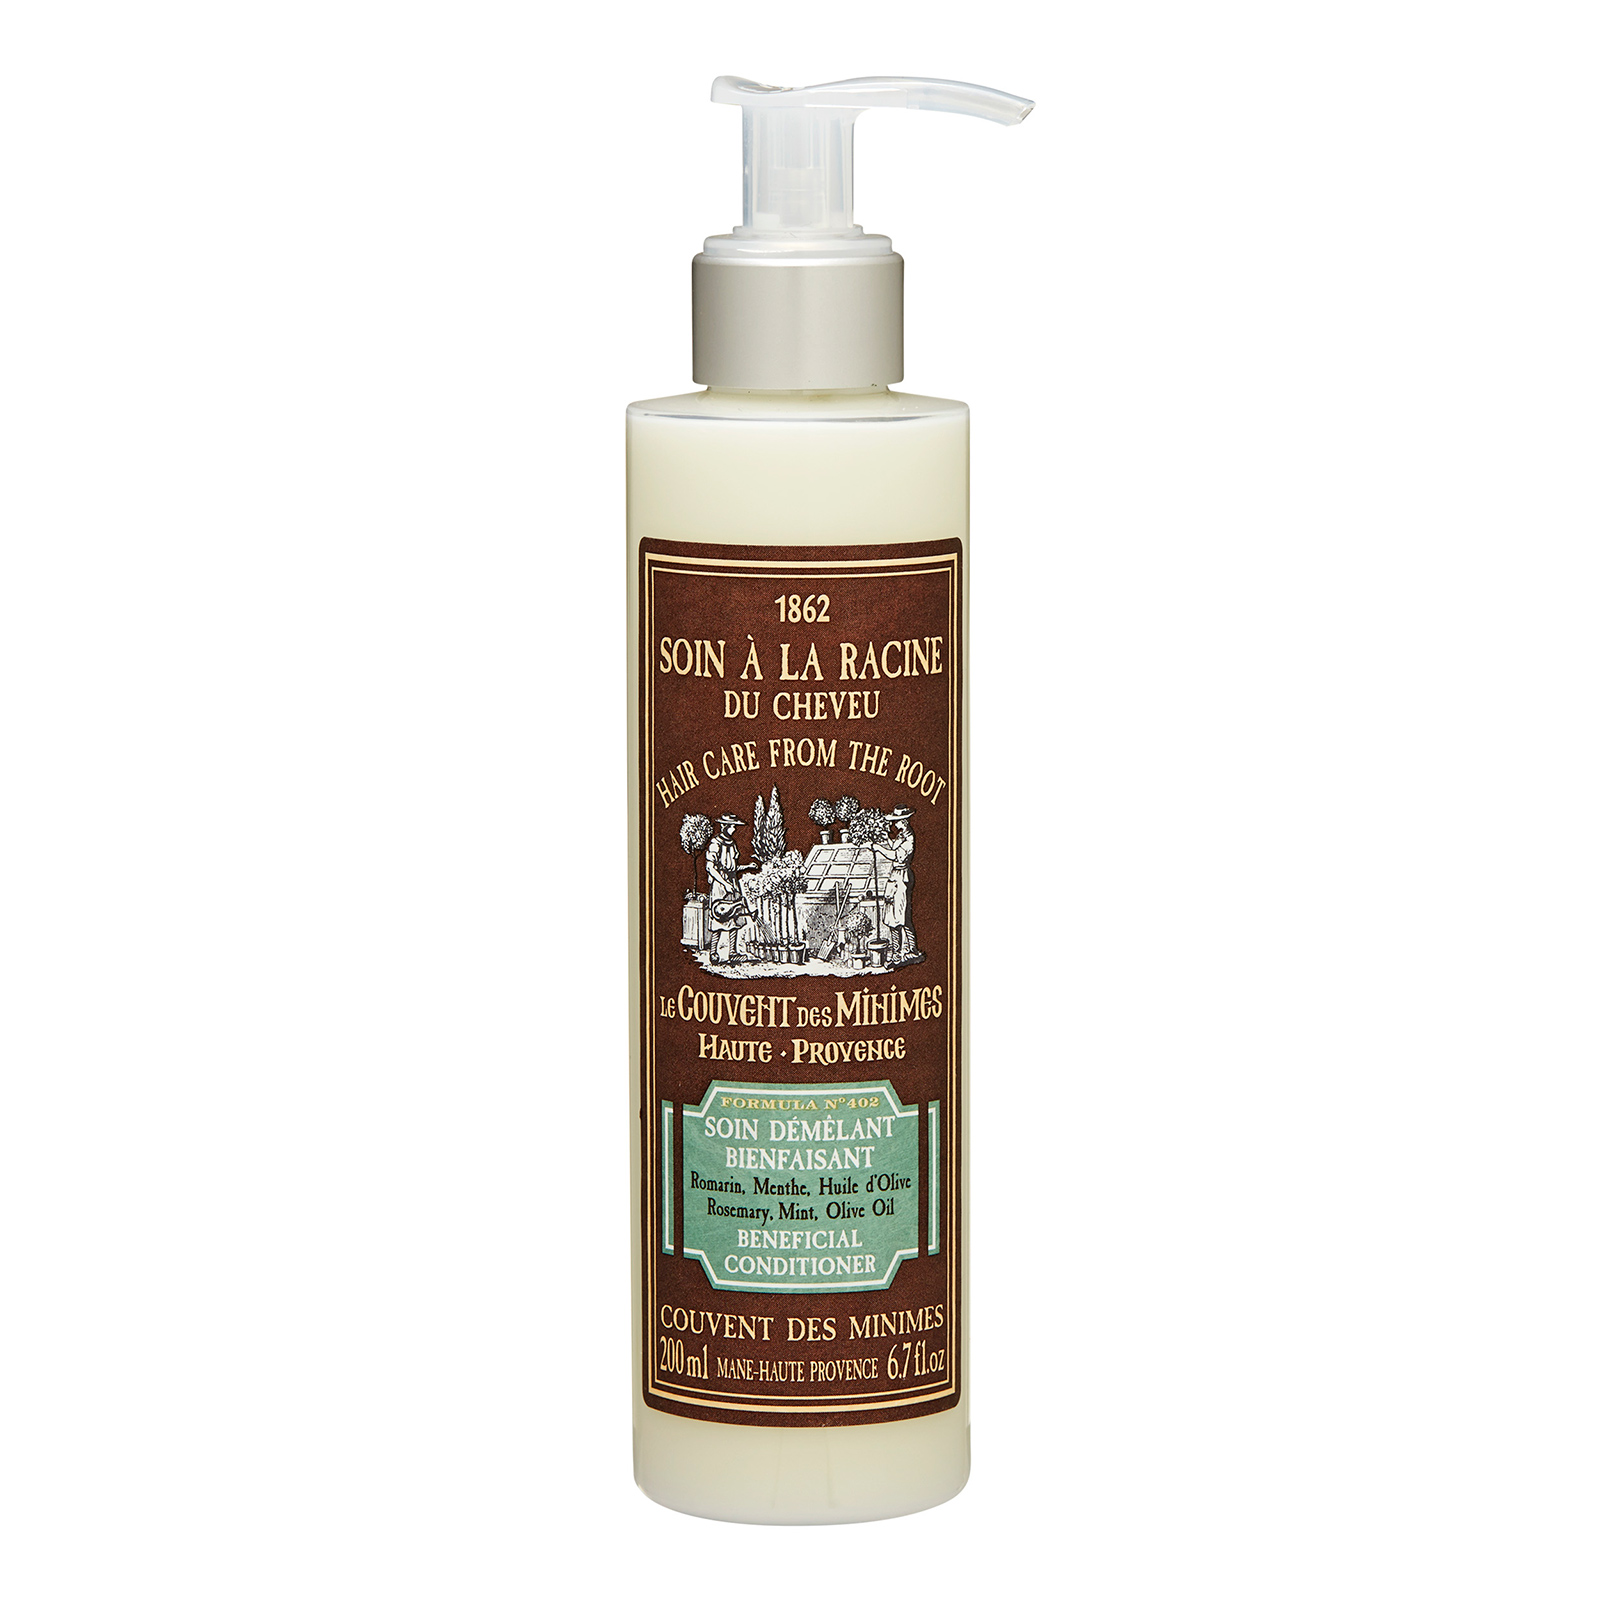 Le Couvent des Minimes Hair Care from the Root Beneficial  Conditioner (For All Hair Types)  6.7oz, 200ml